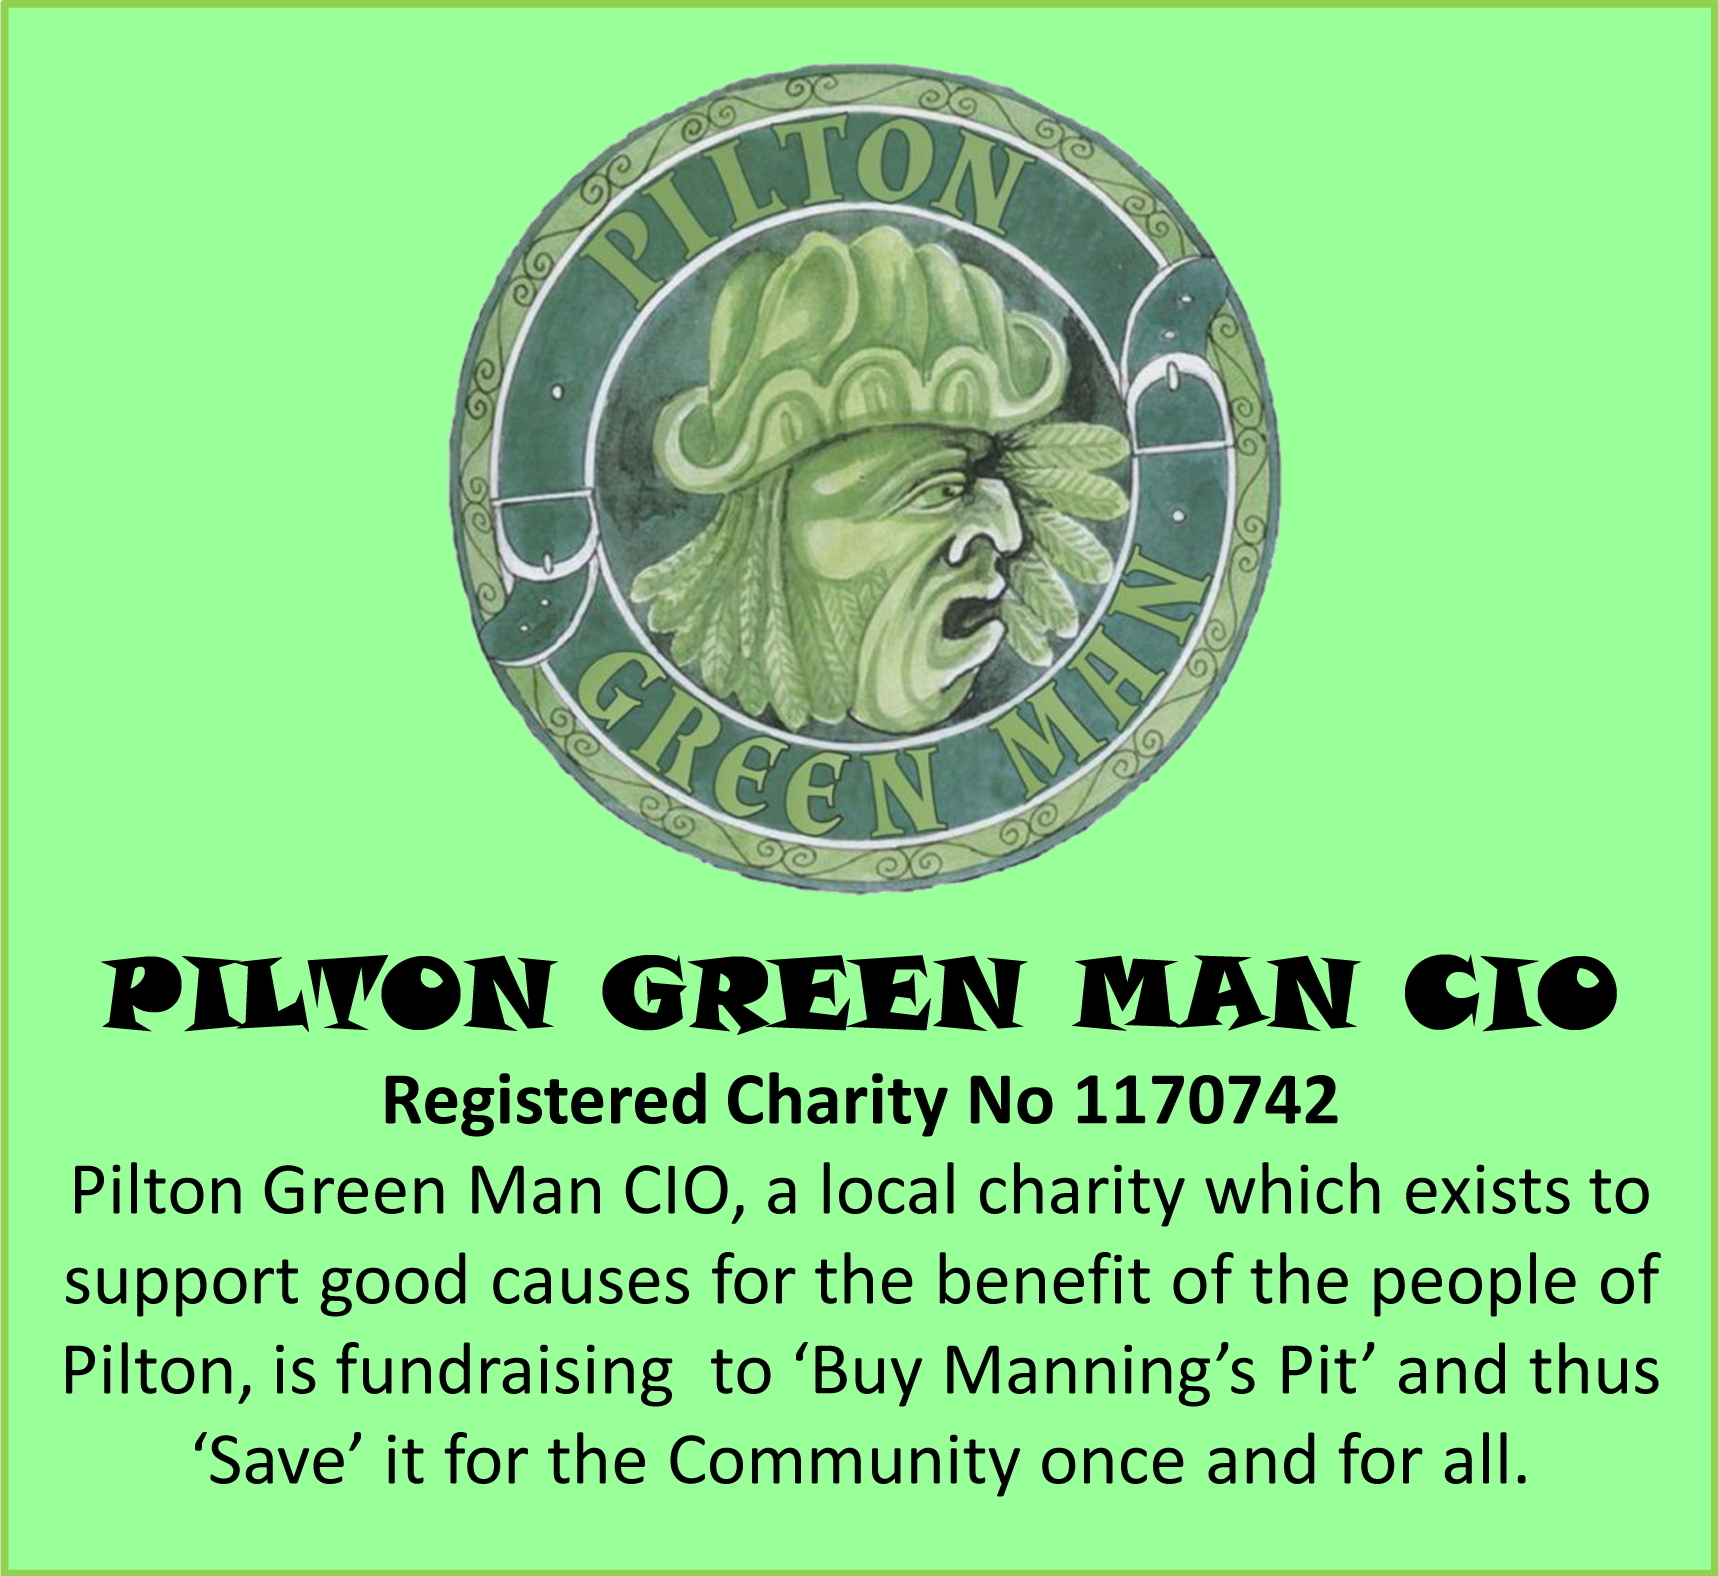 Pilton Green Man CIO